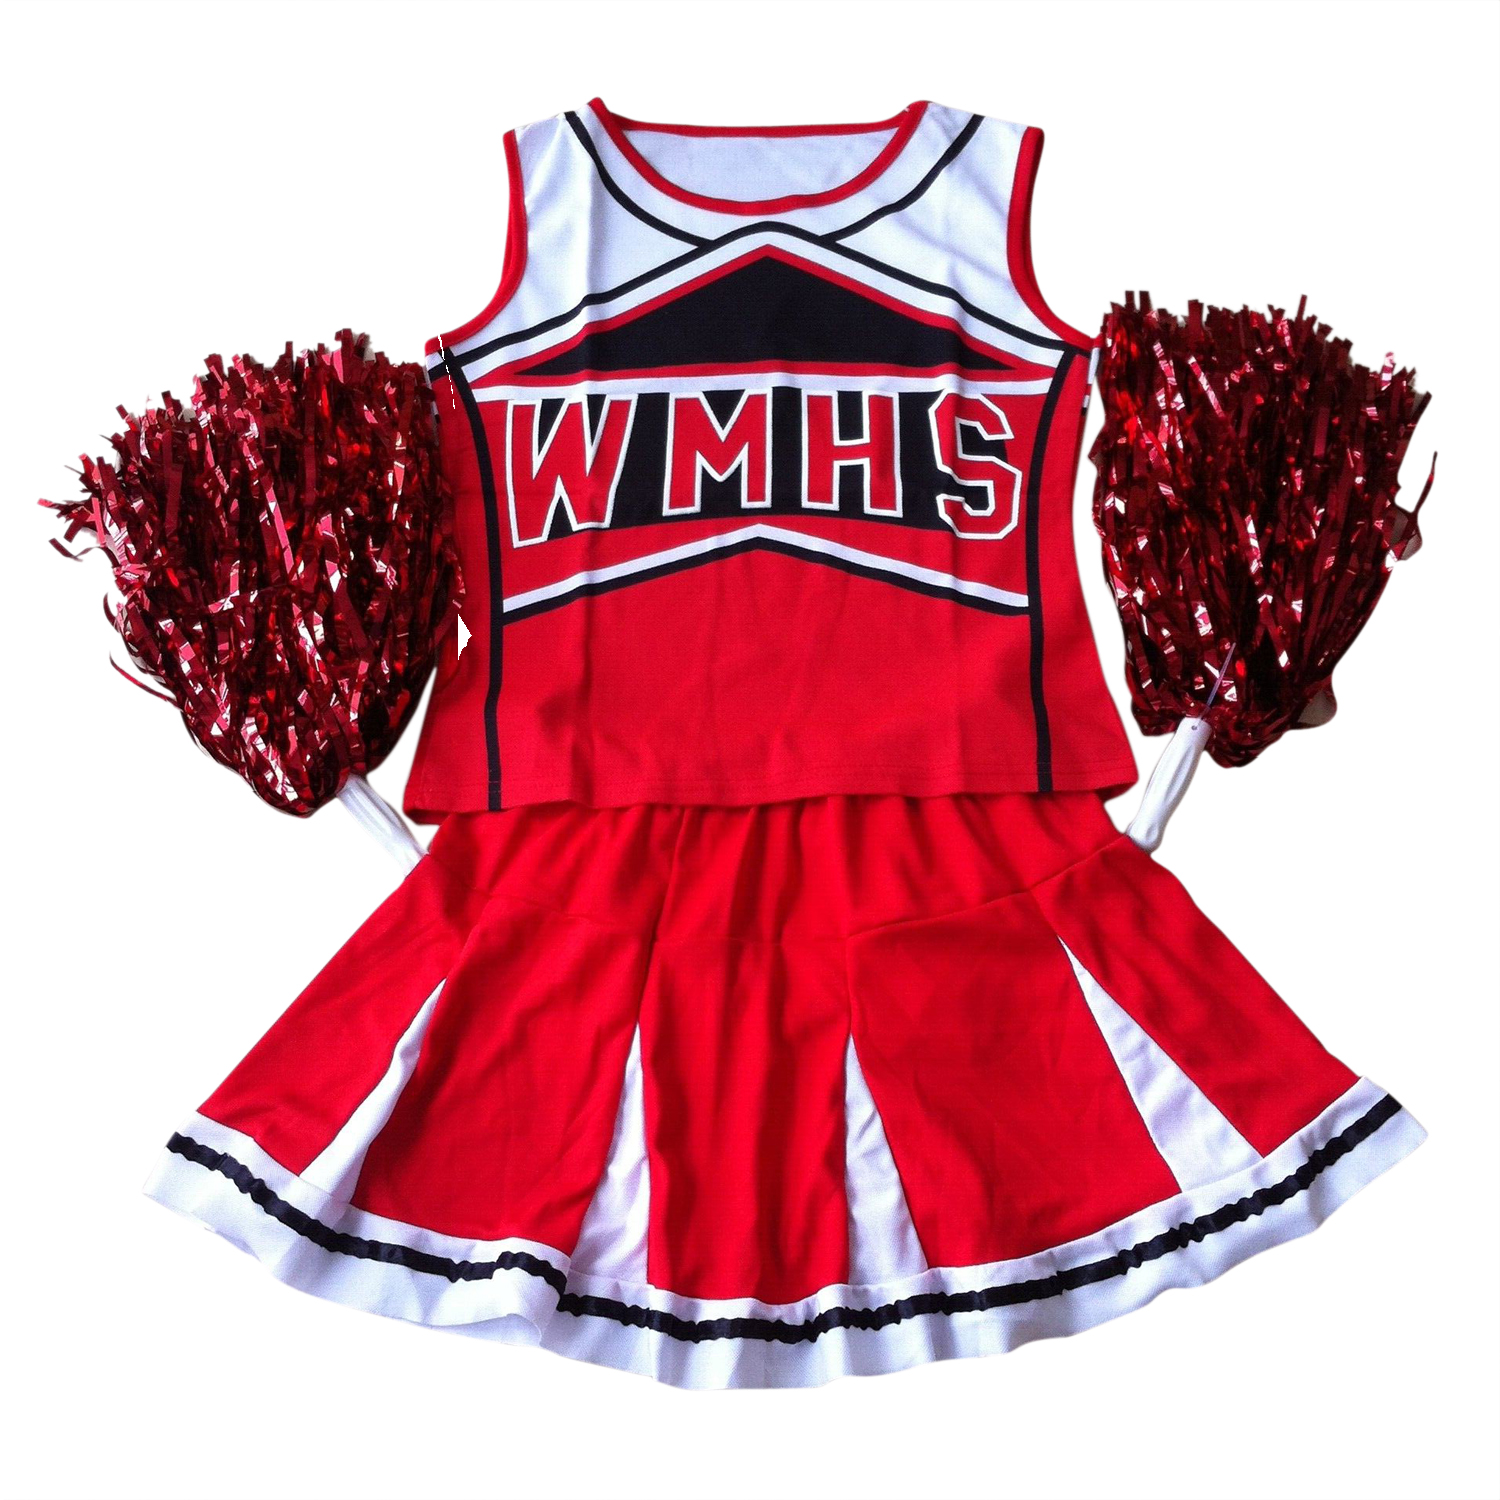 Tank top Petticoat Pom cheer leaders S (30-32) 2 piece suit new red costume